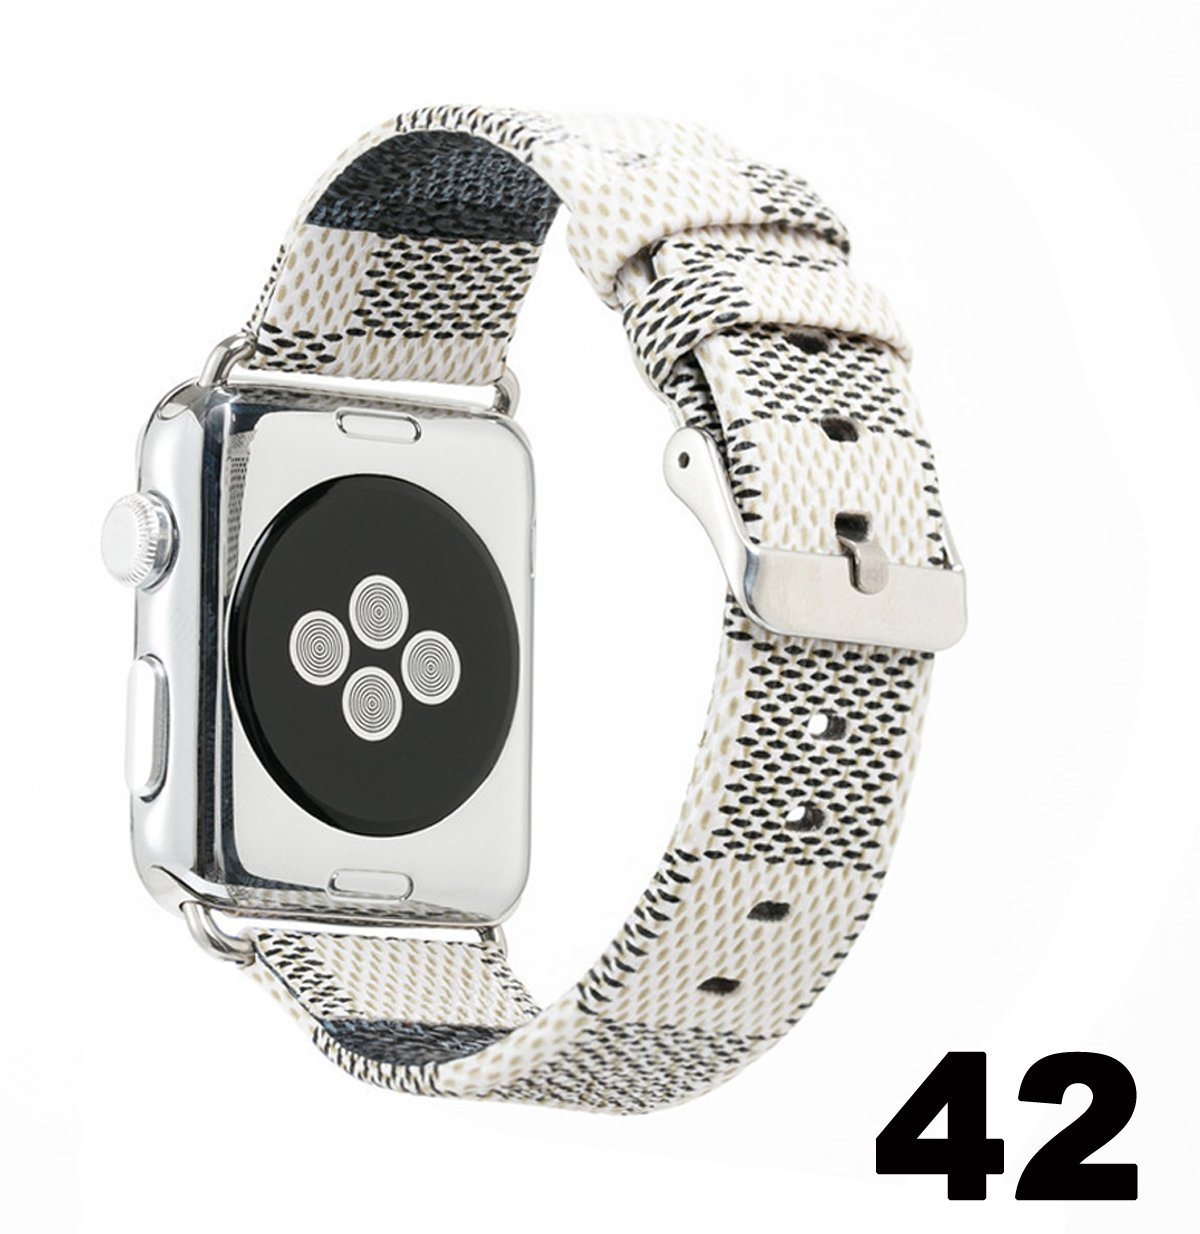 GOKE Compatible for Apple Watch Band 38mm 42mm PU Leather iWatch Strap,Sport Leisure Style iWatch Band Lattice,for Series 3 2 1 (White, 42mm)